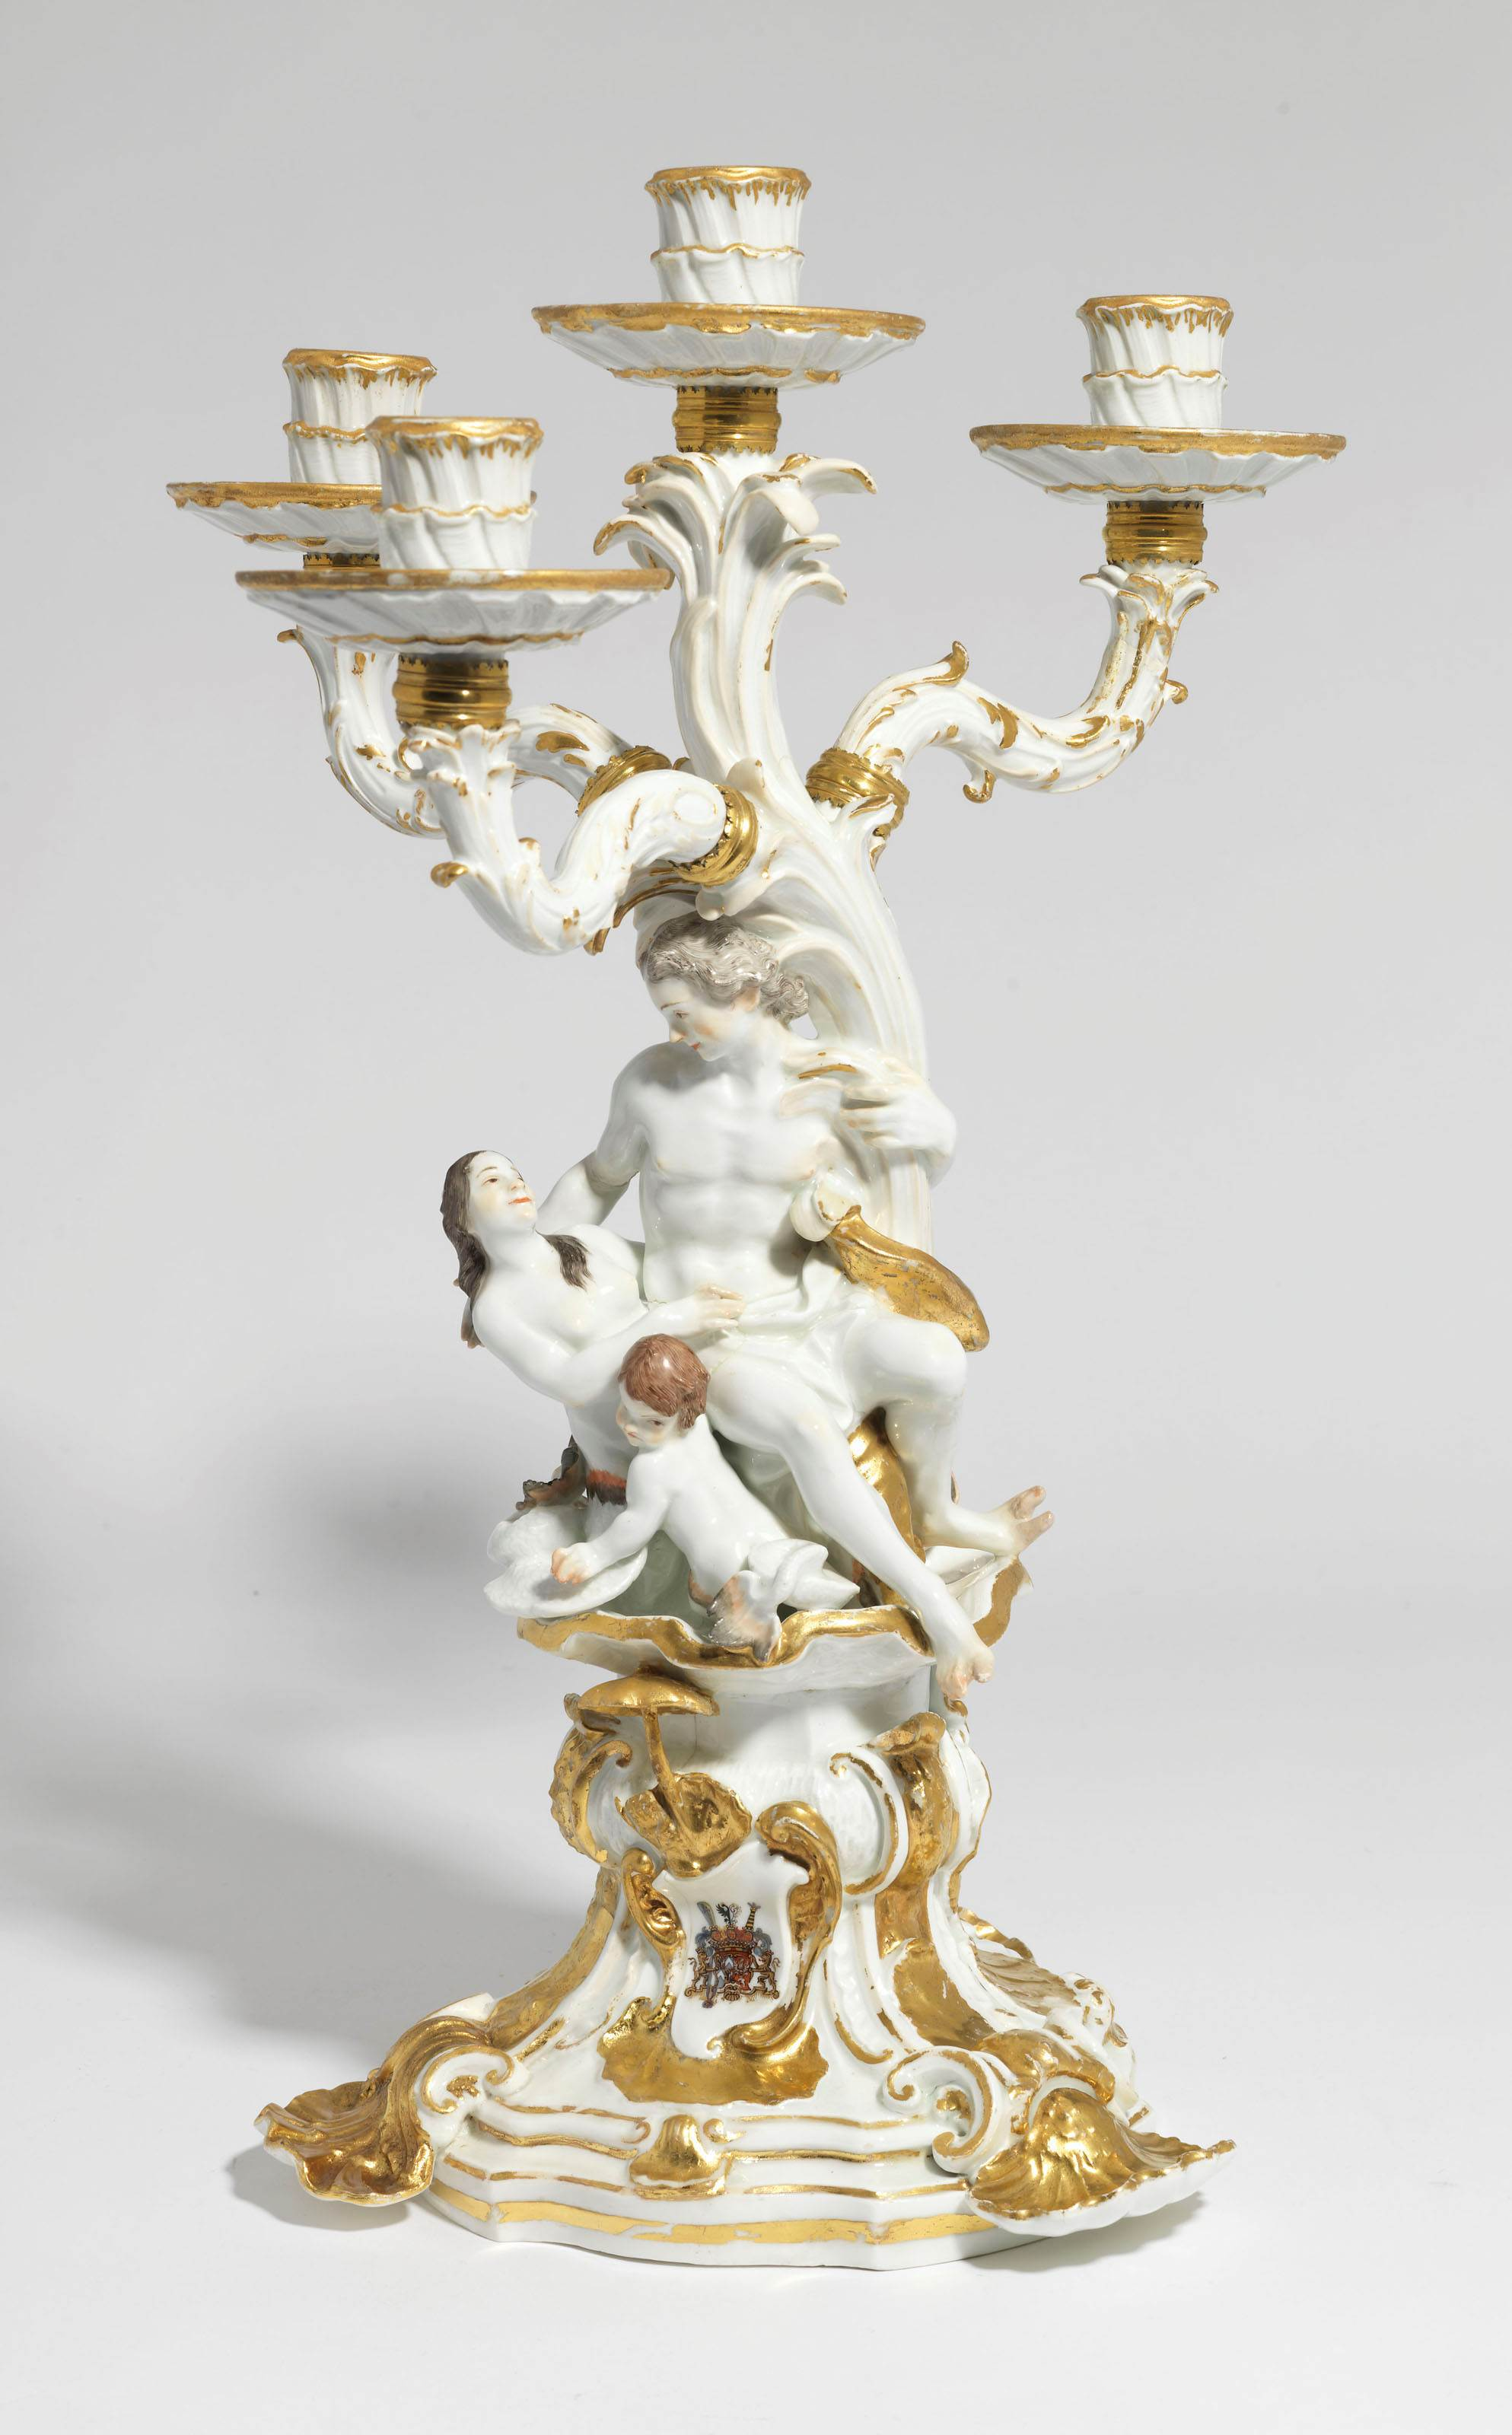 A MEISSEN PORCELAIN ARMORIAL FOUR-LIGHT CANDELABRUM FROM THE SWAN SERVICE